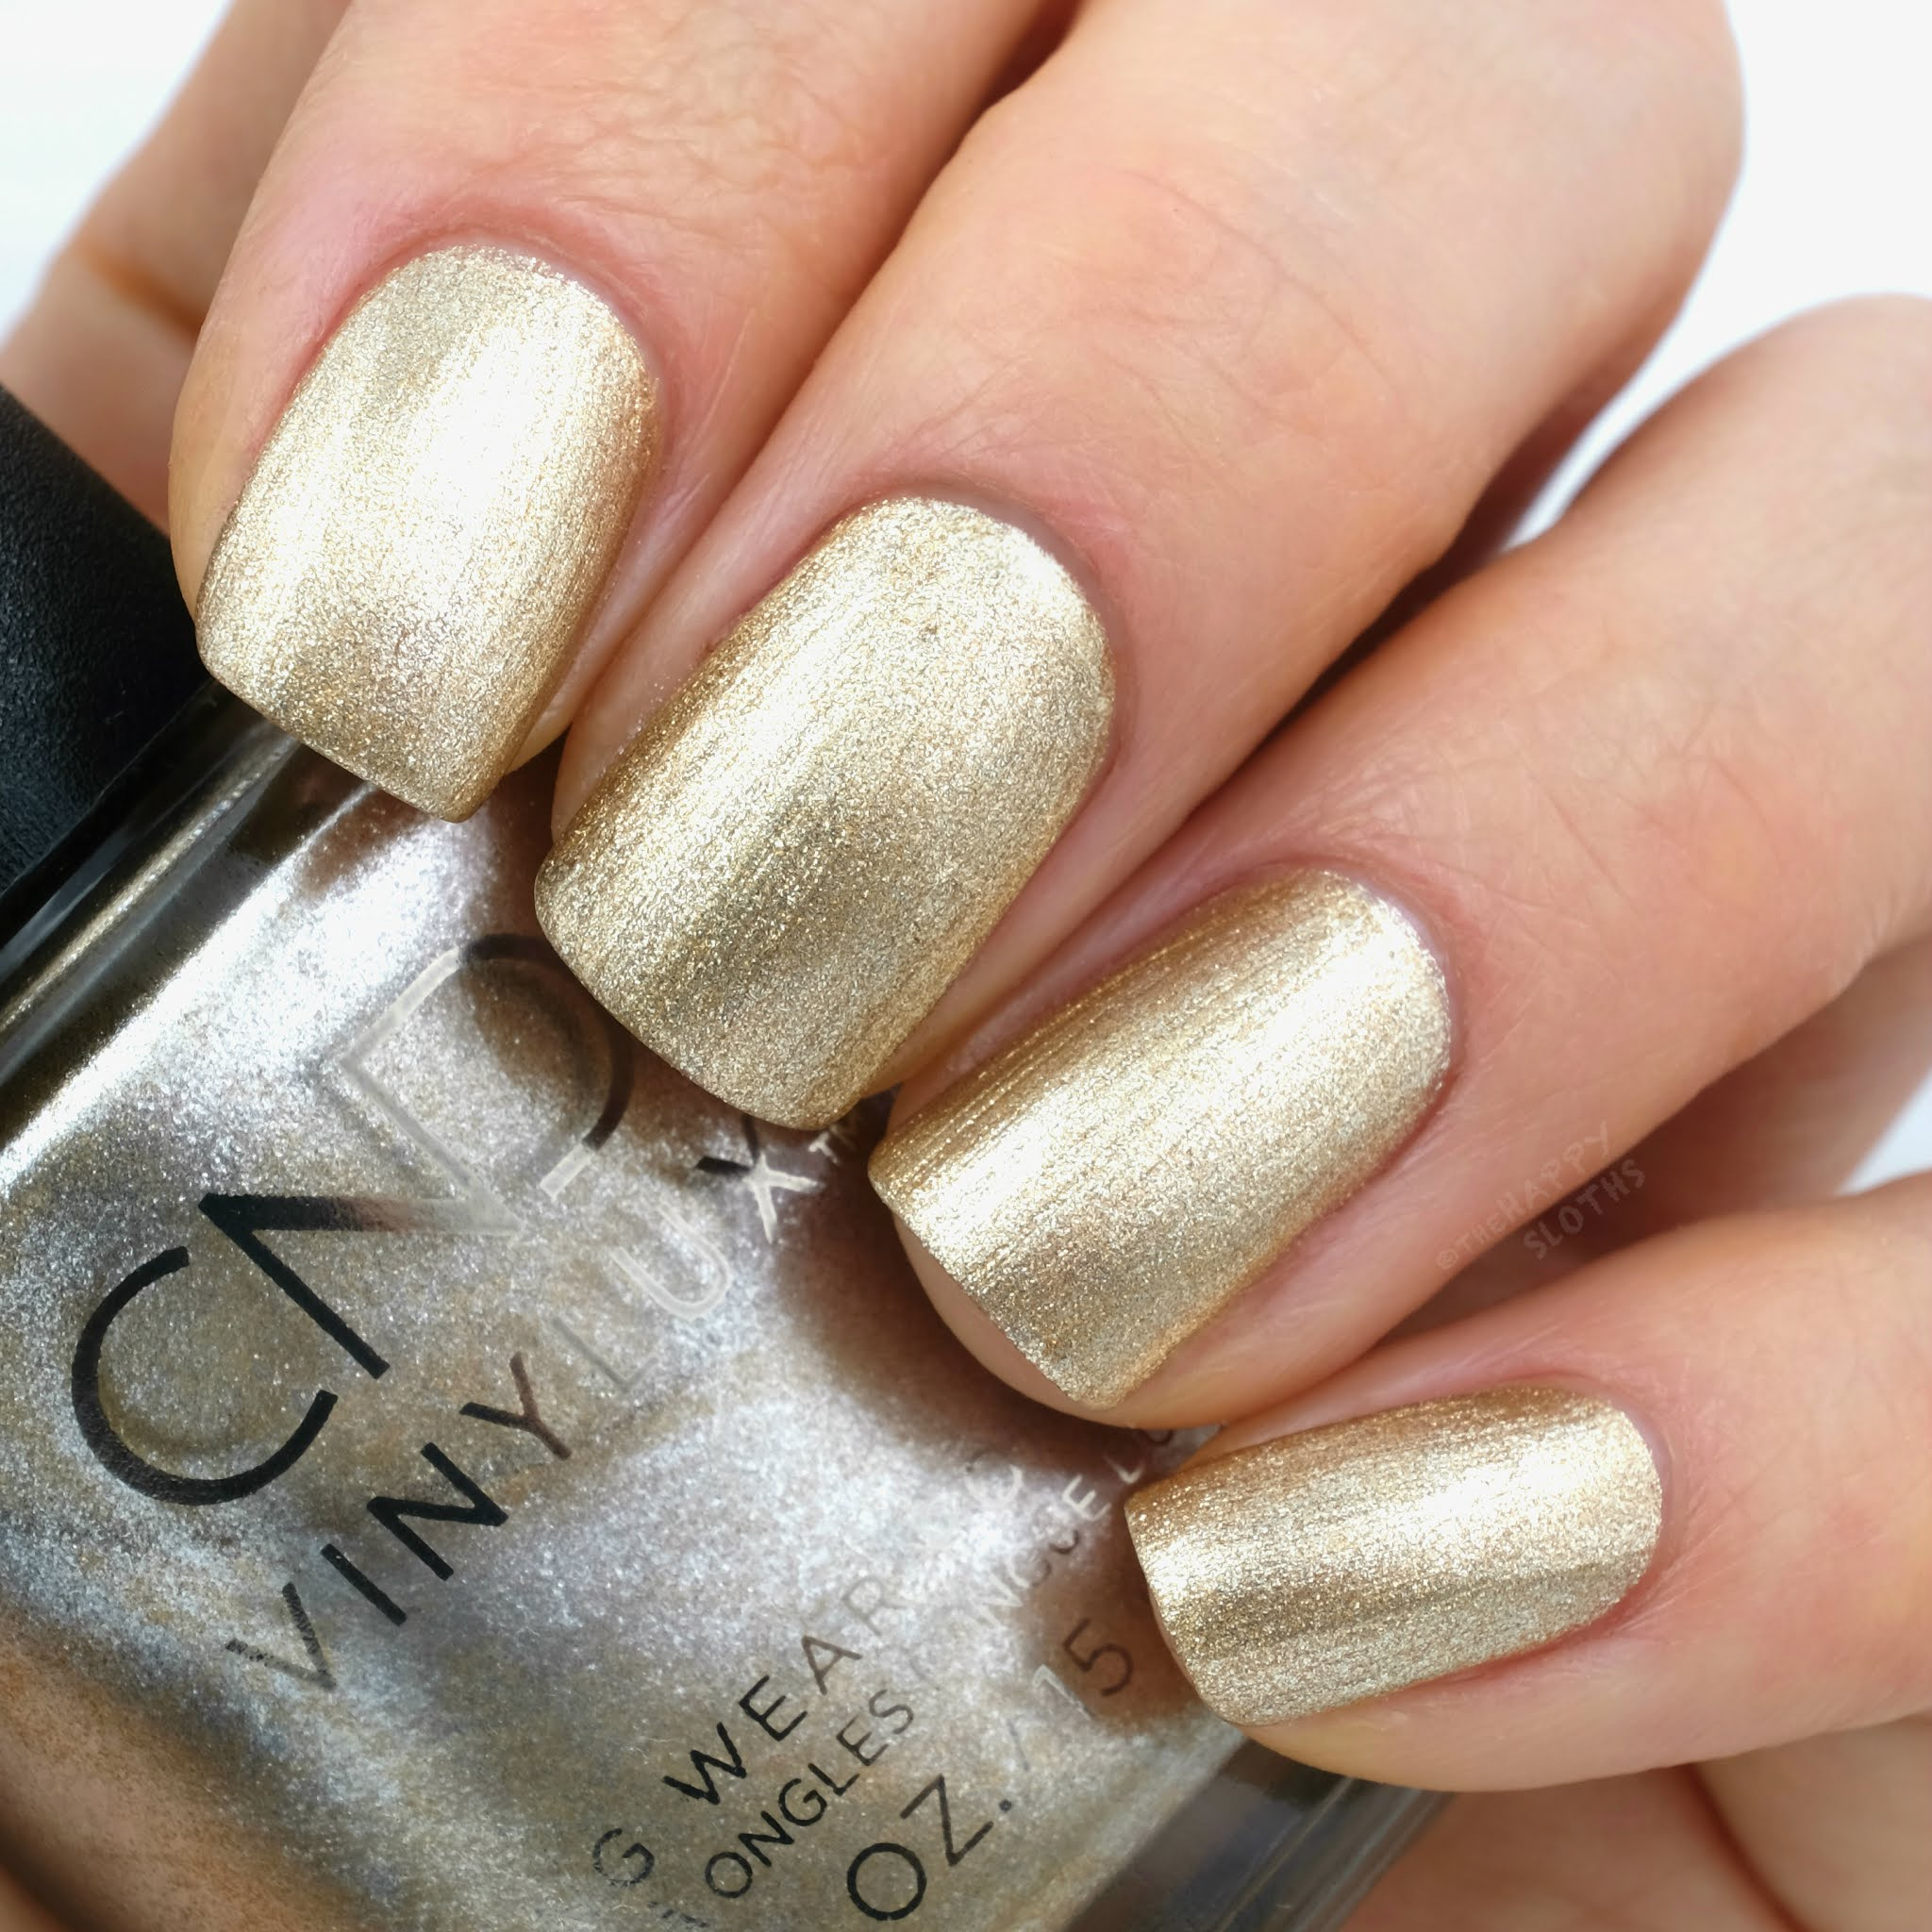 CND | Holiday 2020 Cocktail Couture Collection | Get That Gold: Review and Swatches